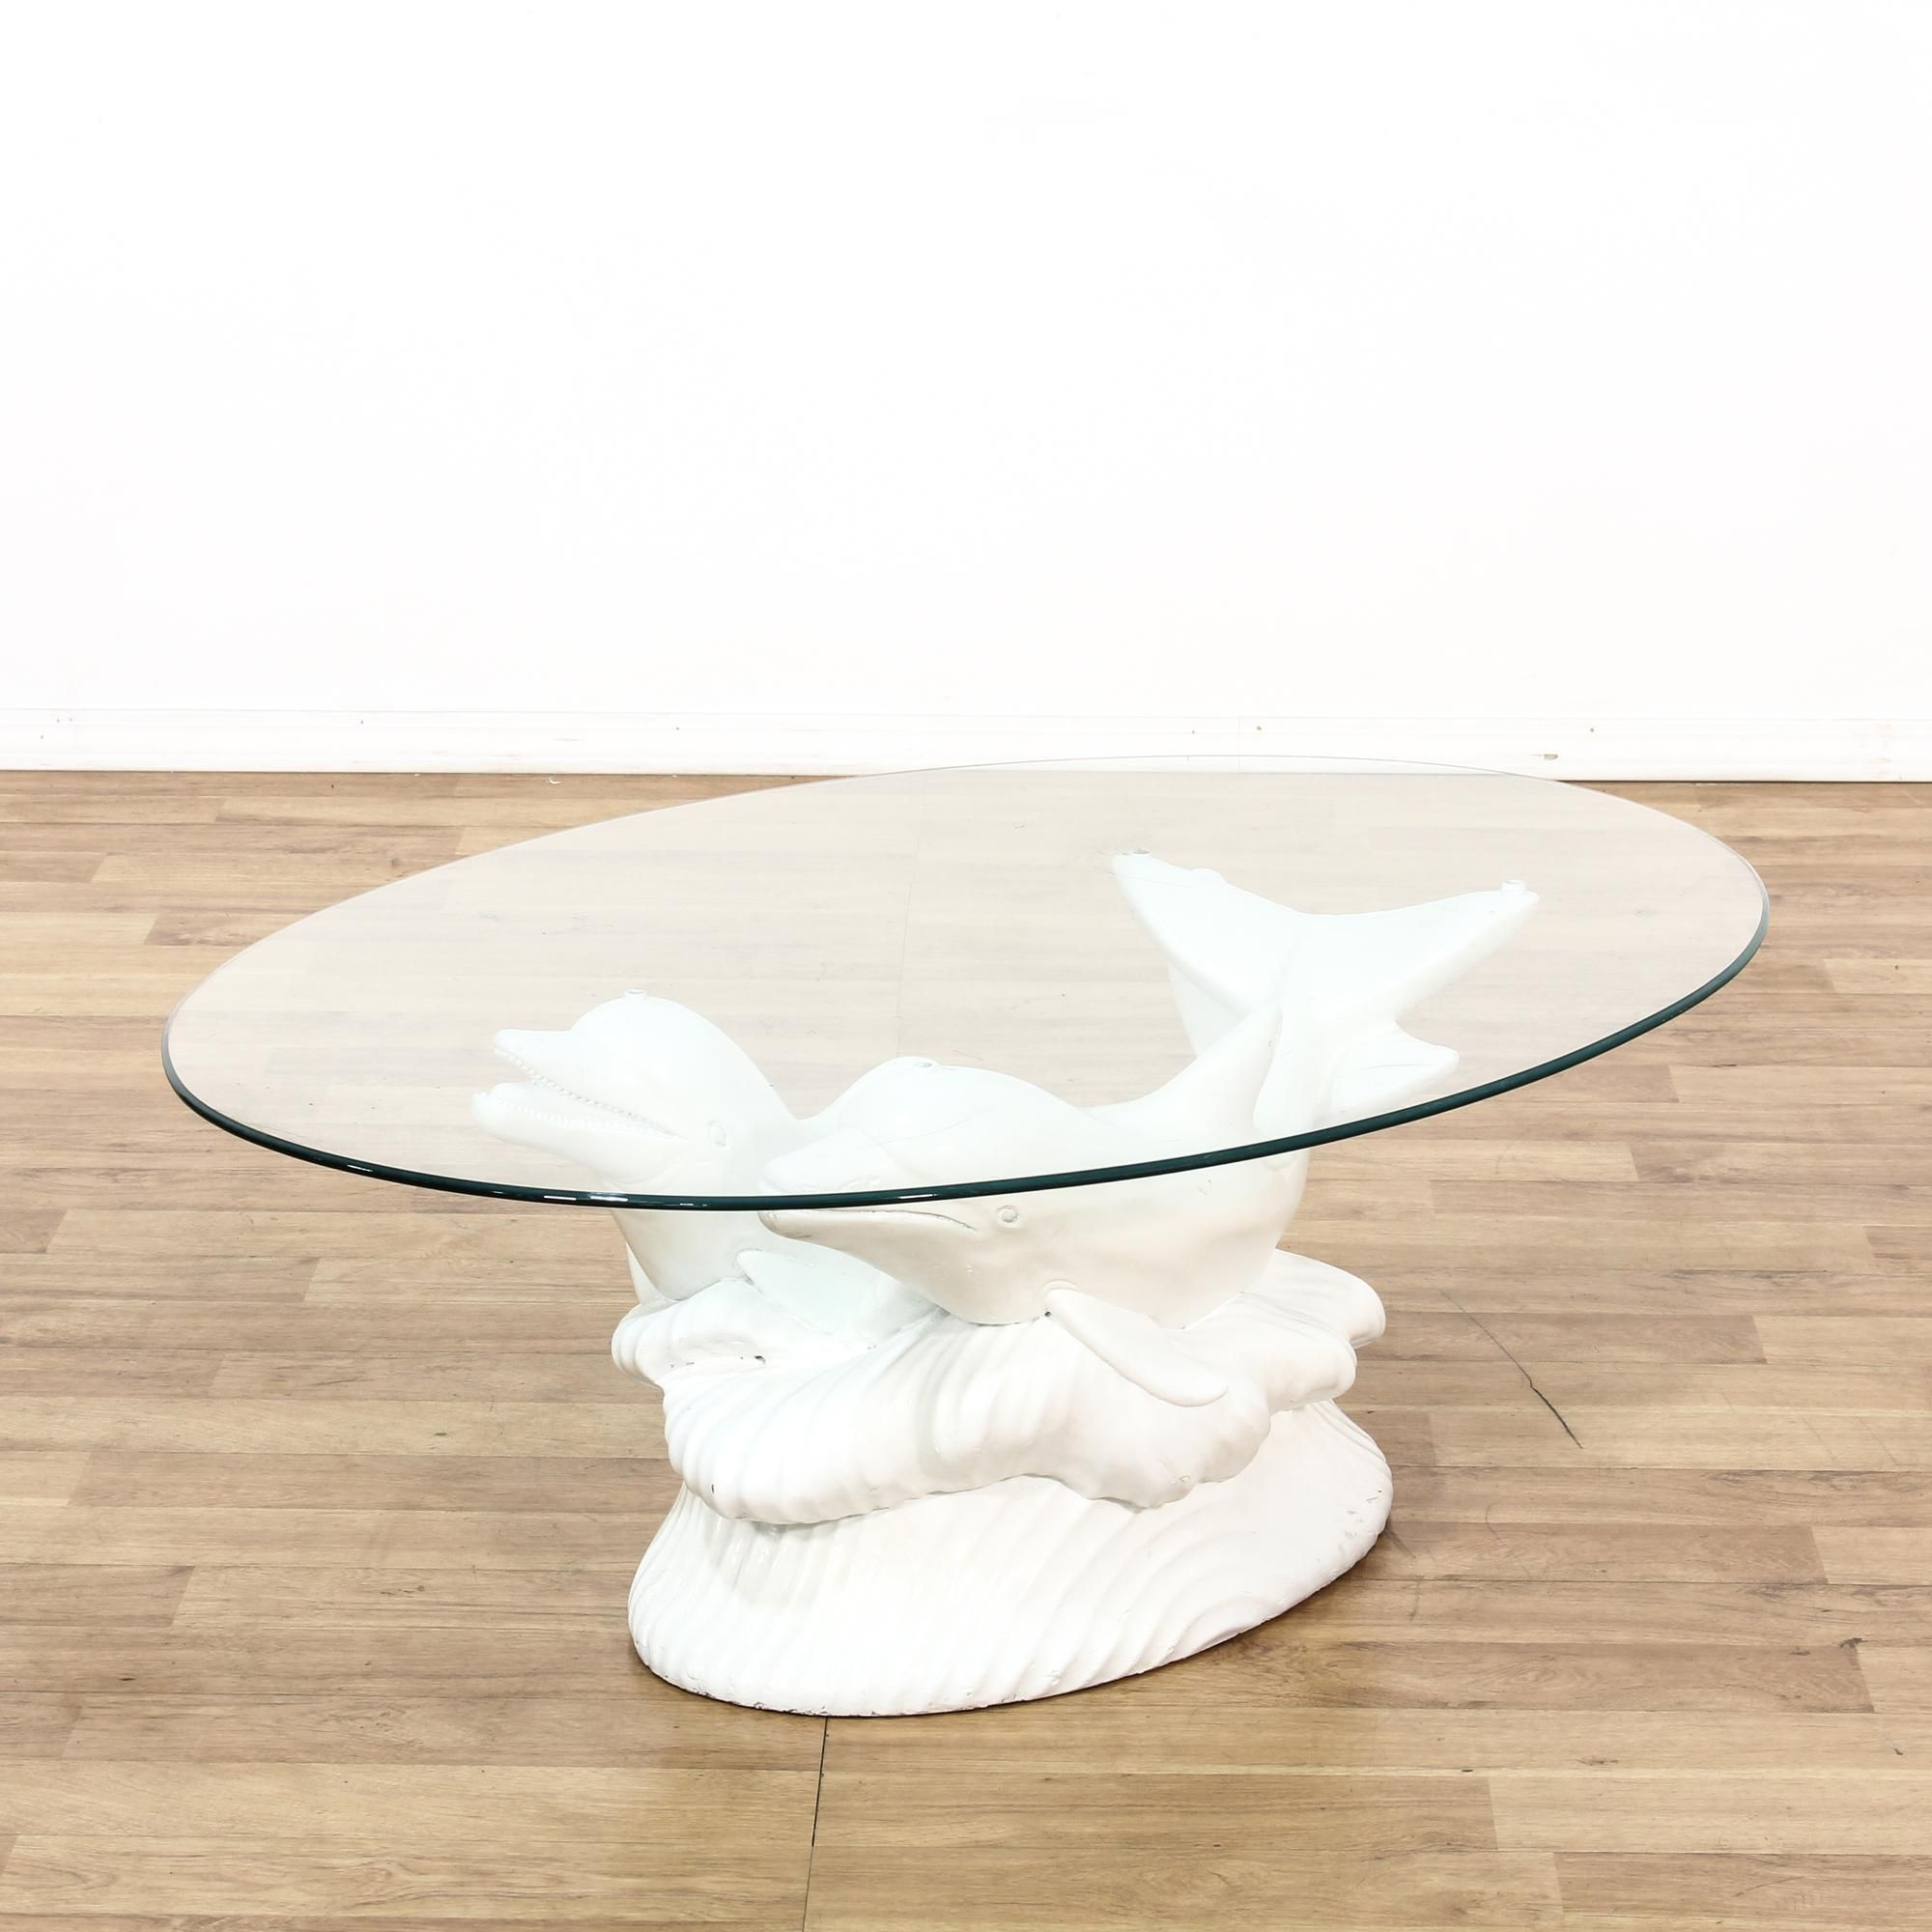 This Coffee Table Features A Plaster Style Base With A Fresh White Finish This Coastal Coffee